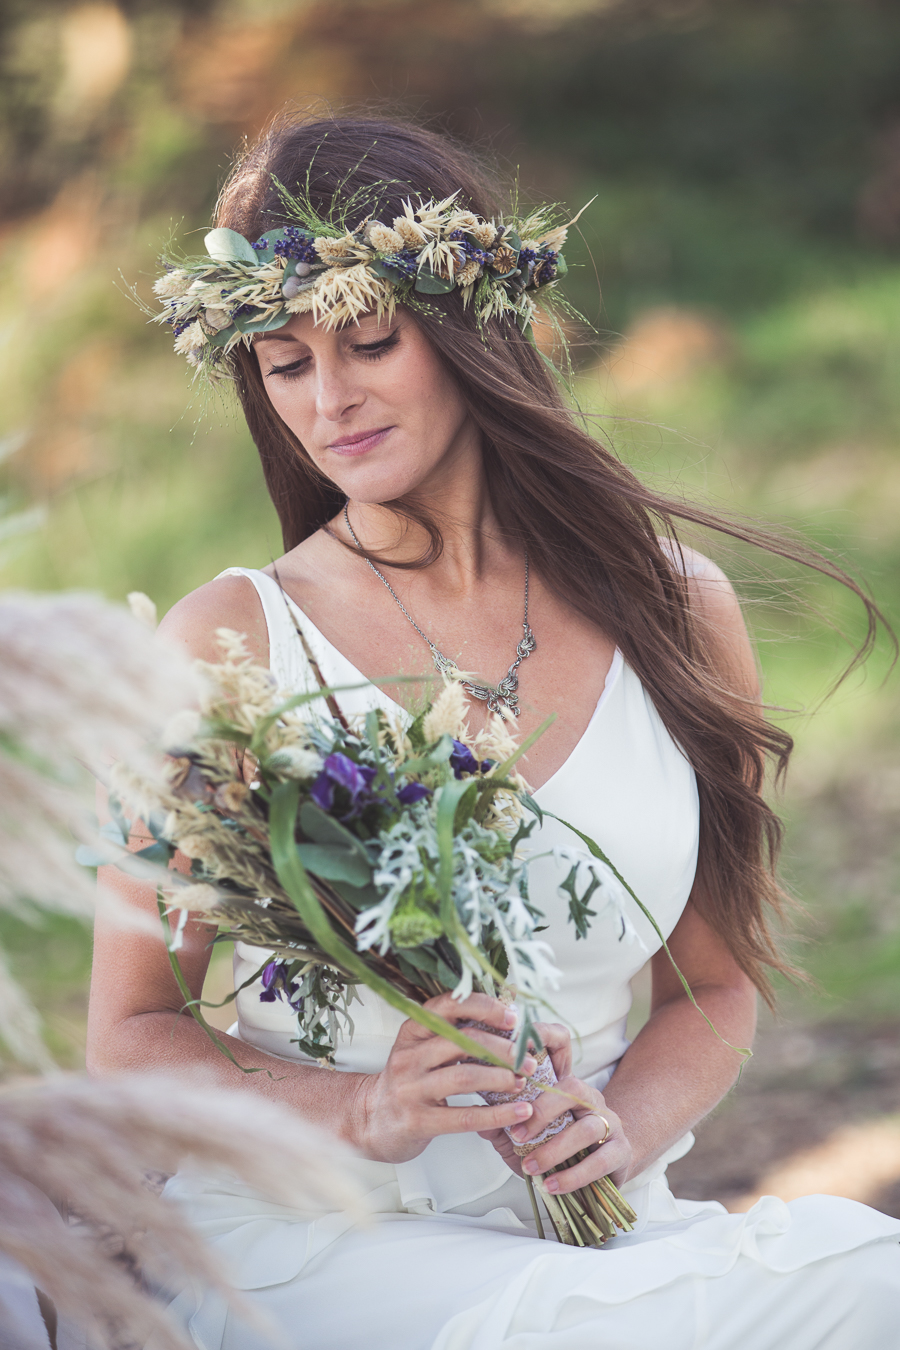 Beach boho wedding styling ideas from the UK, image credit Katie Mortimore (11)